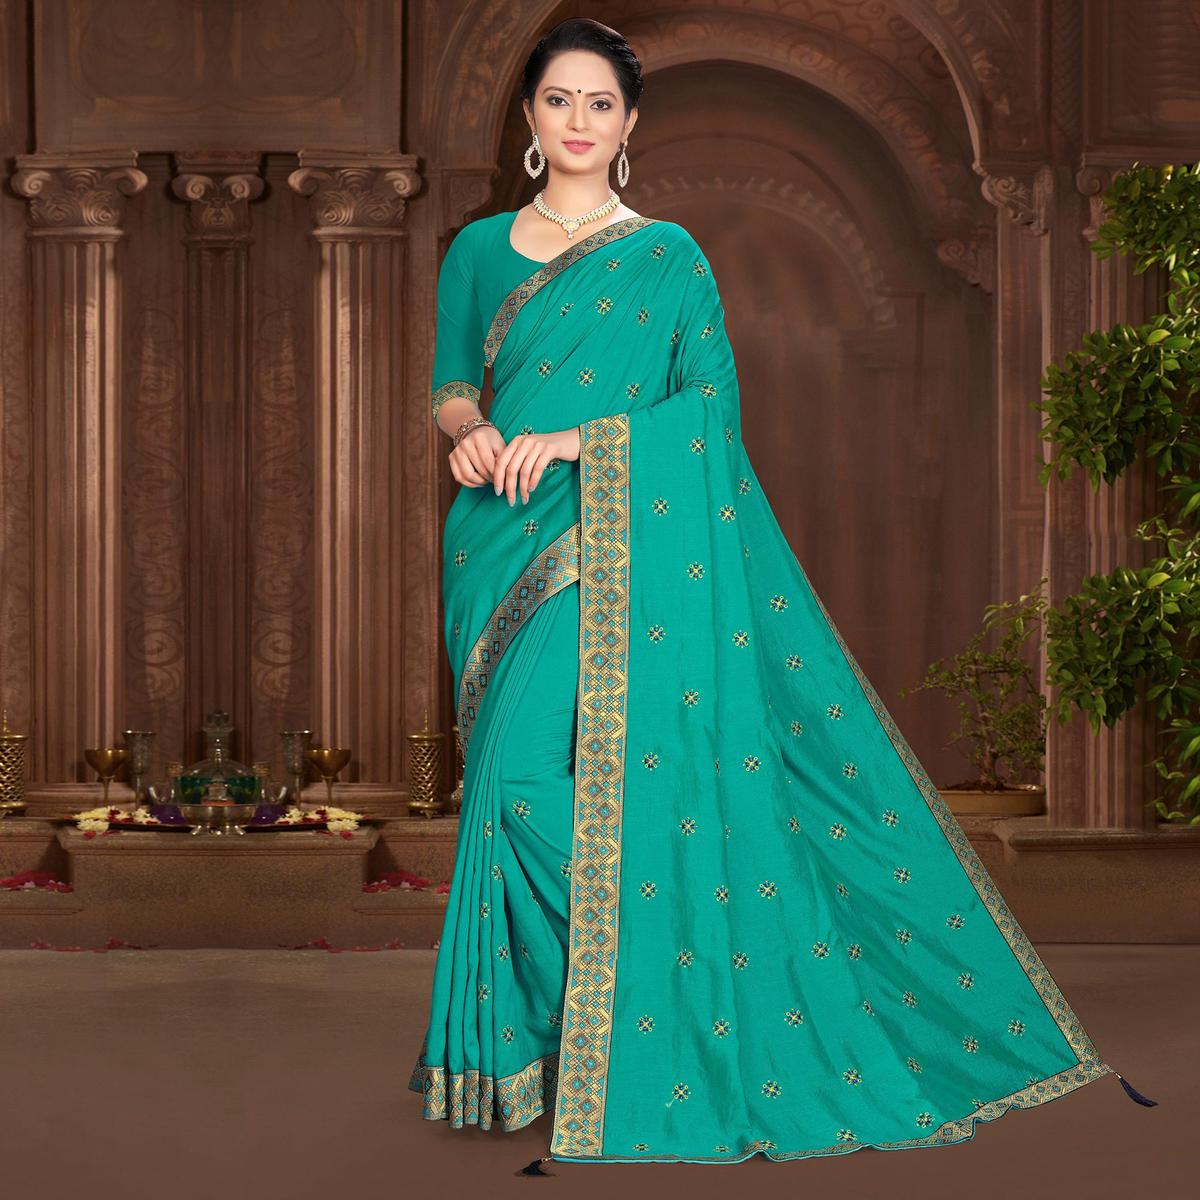 Indian Women Casual Wear Turquoise Green Vichitra Silk Lace With Embroidery Designer Saree